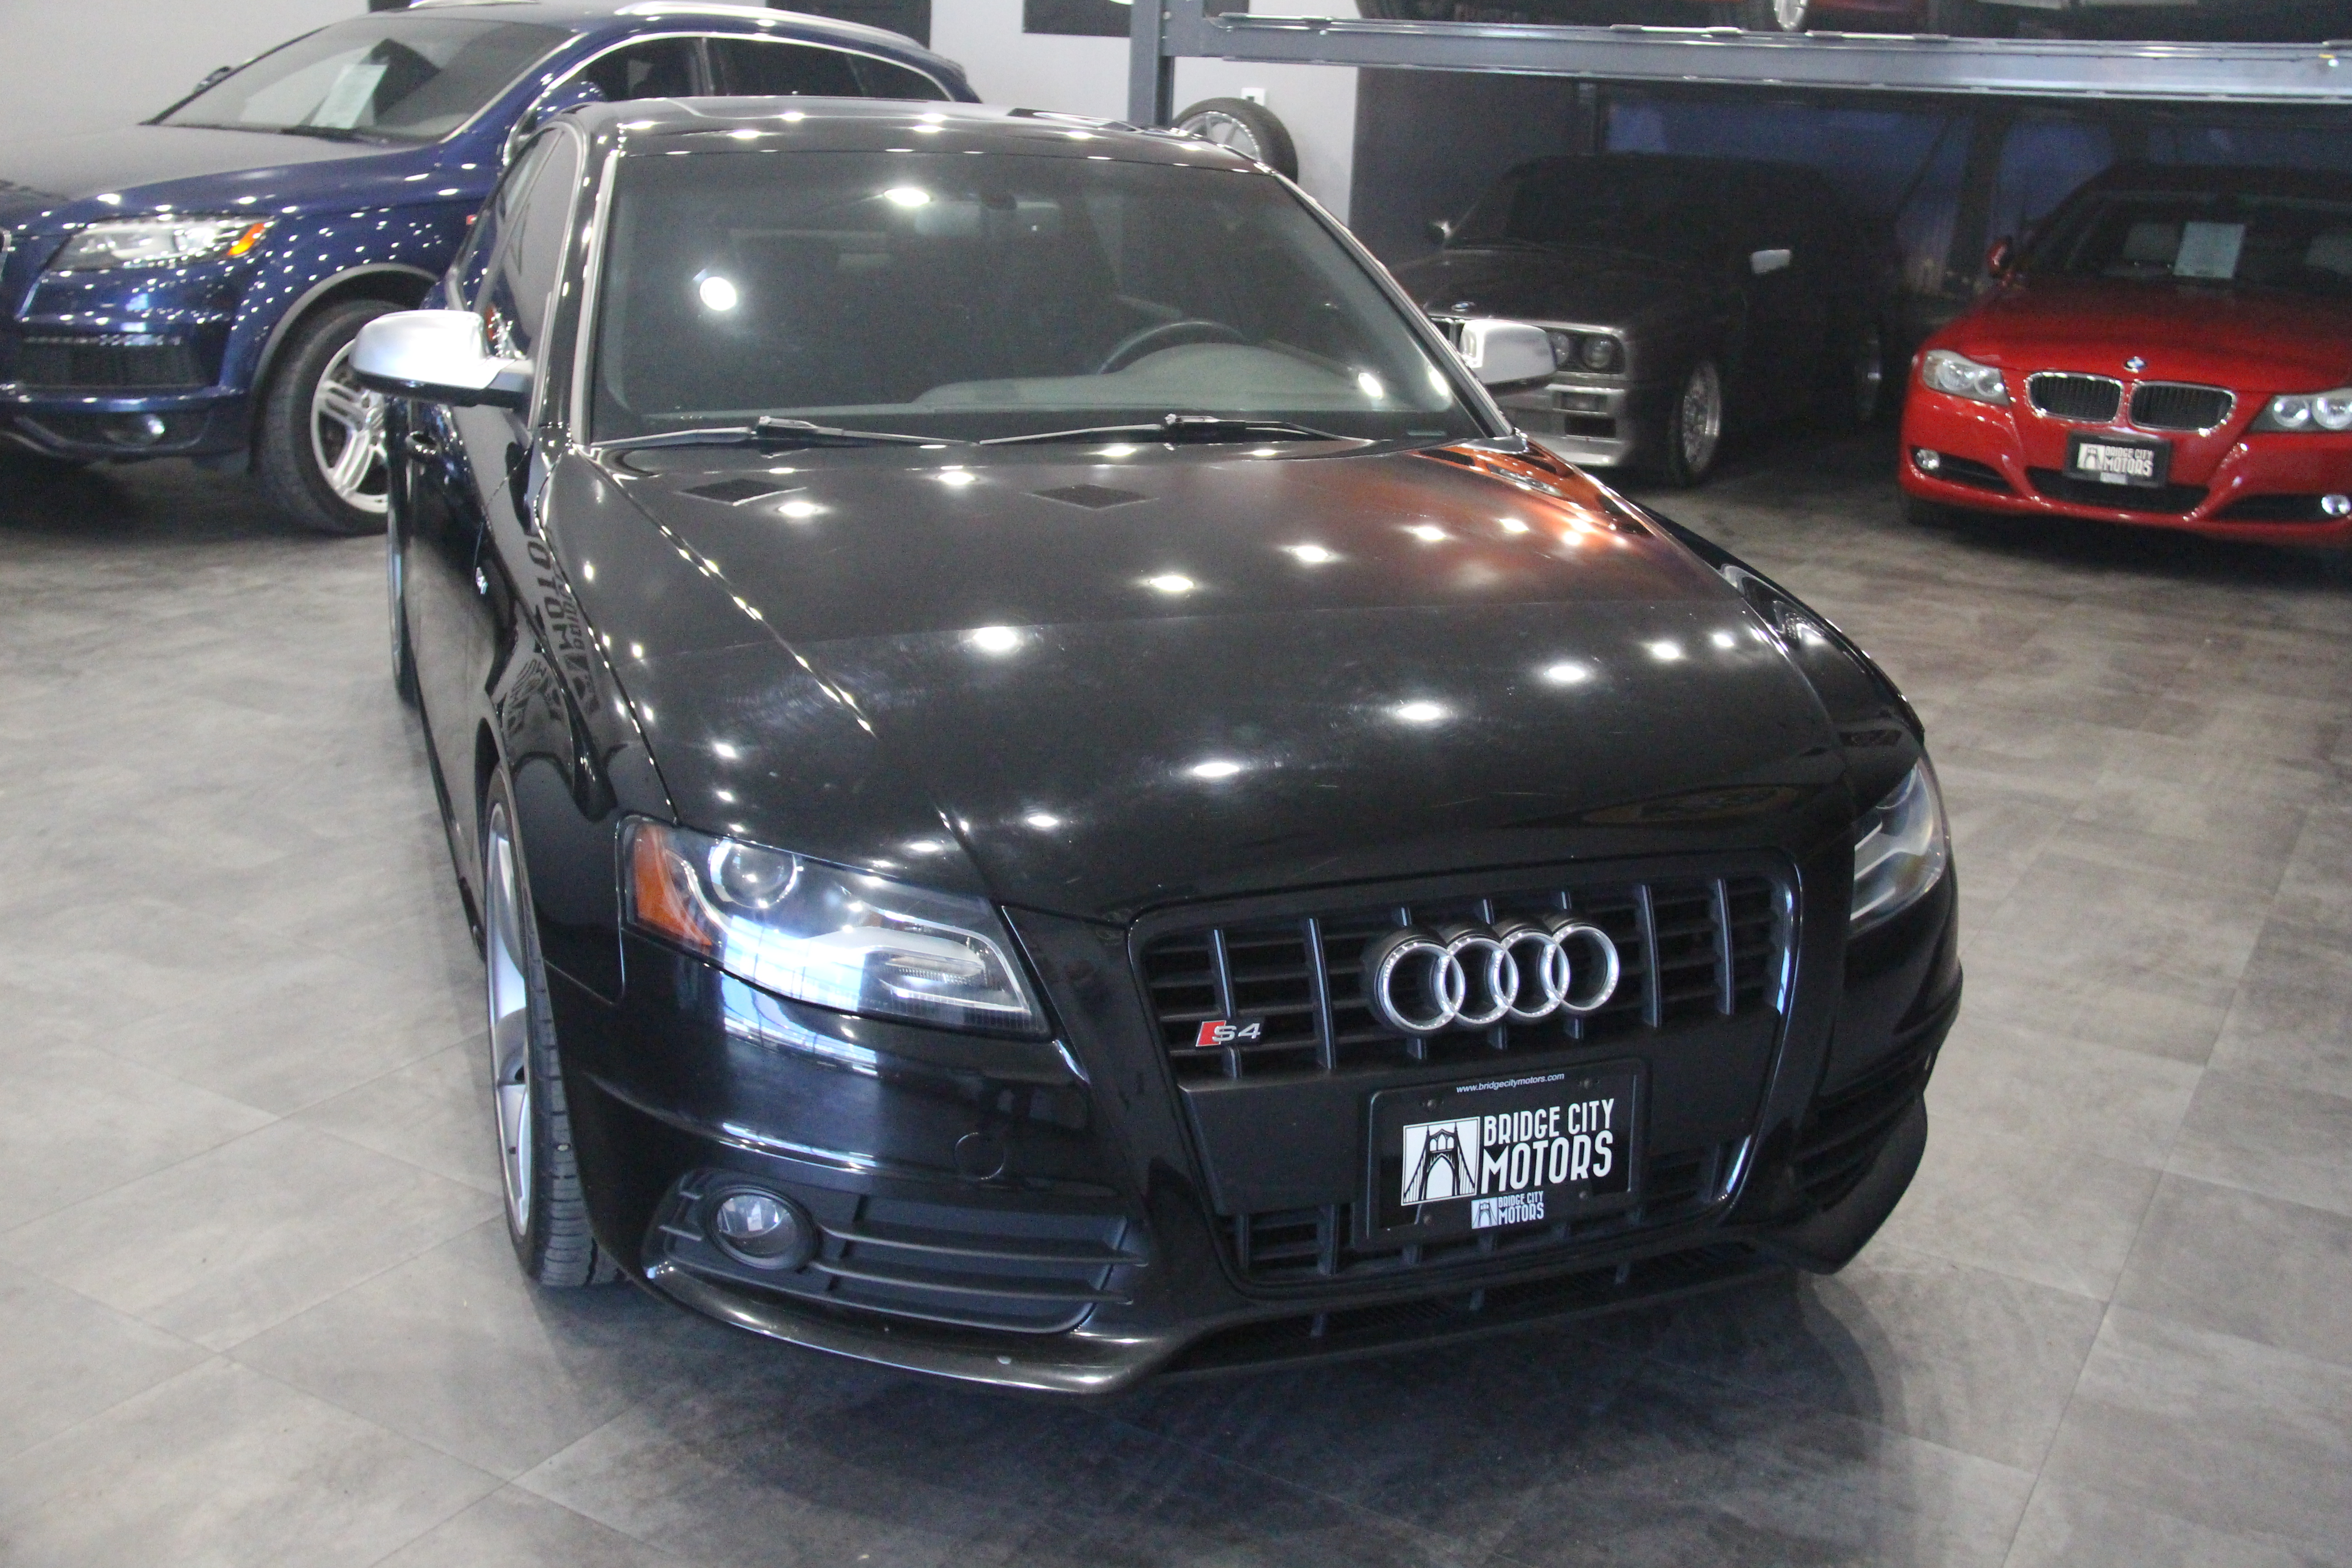 packages adrenaline edition audi for race products challenge stasis sale bred